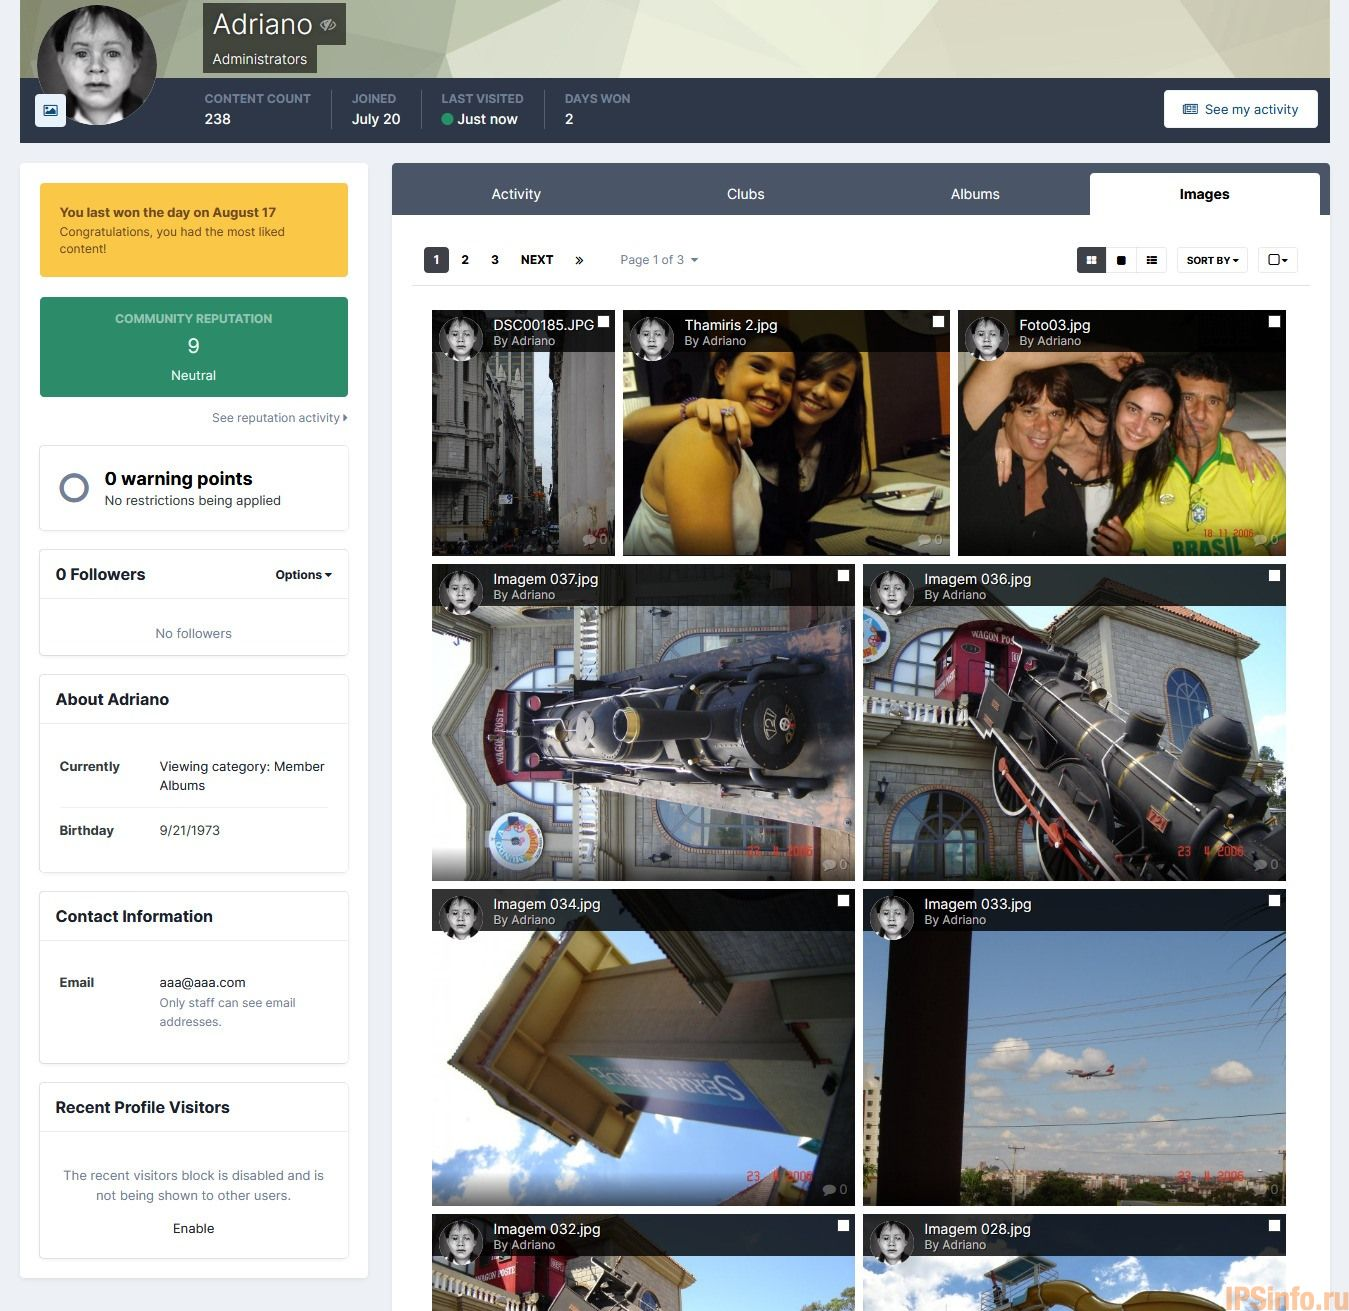 Gallery Images Tab on User Profile